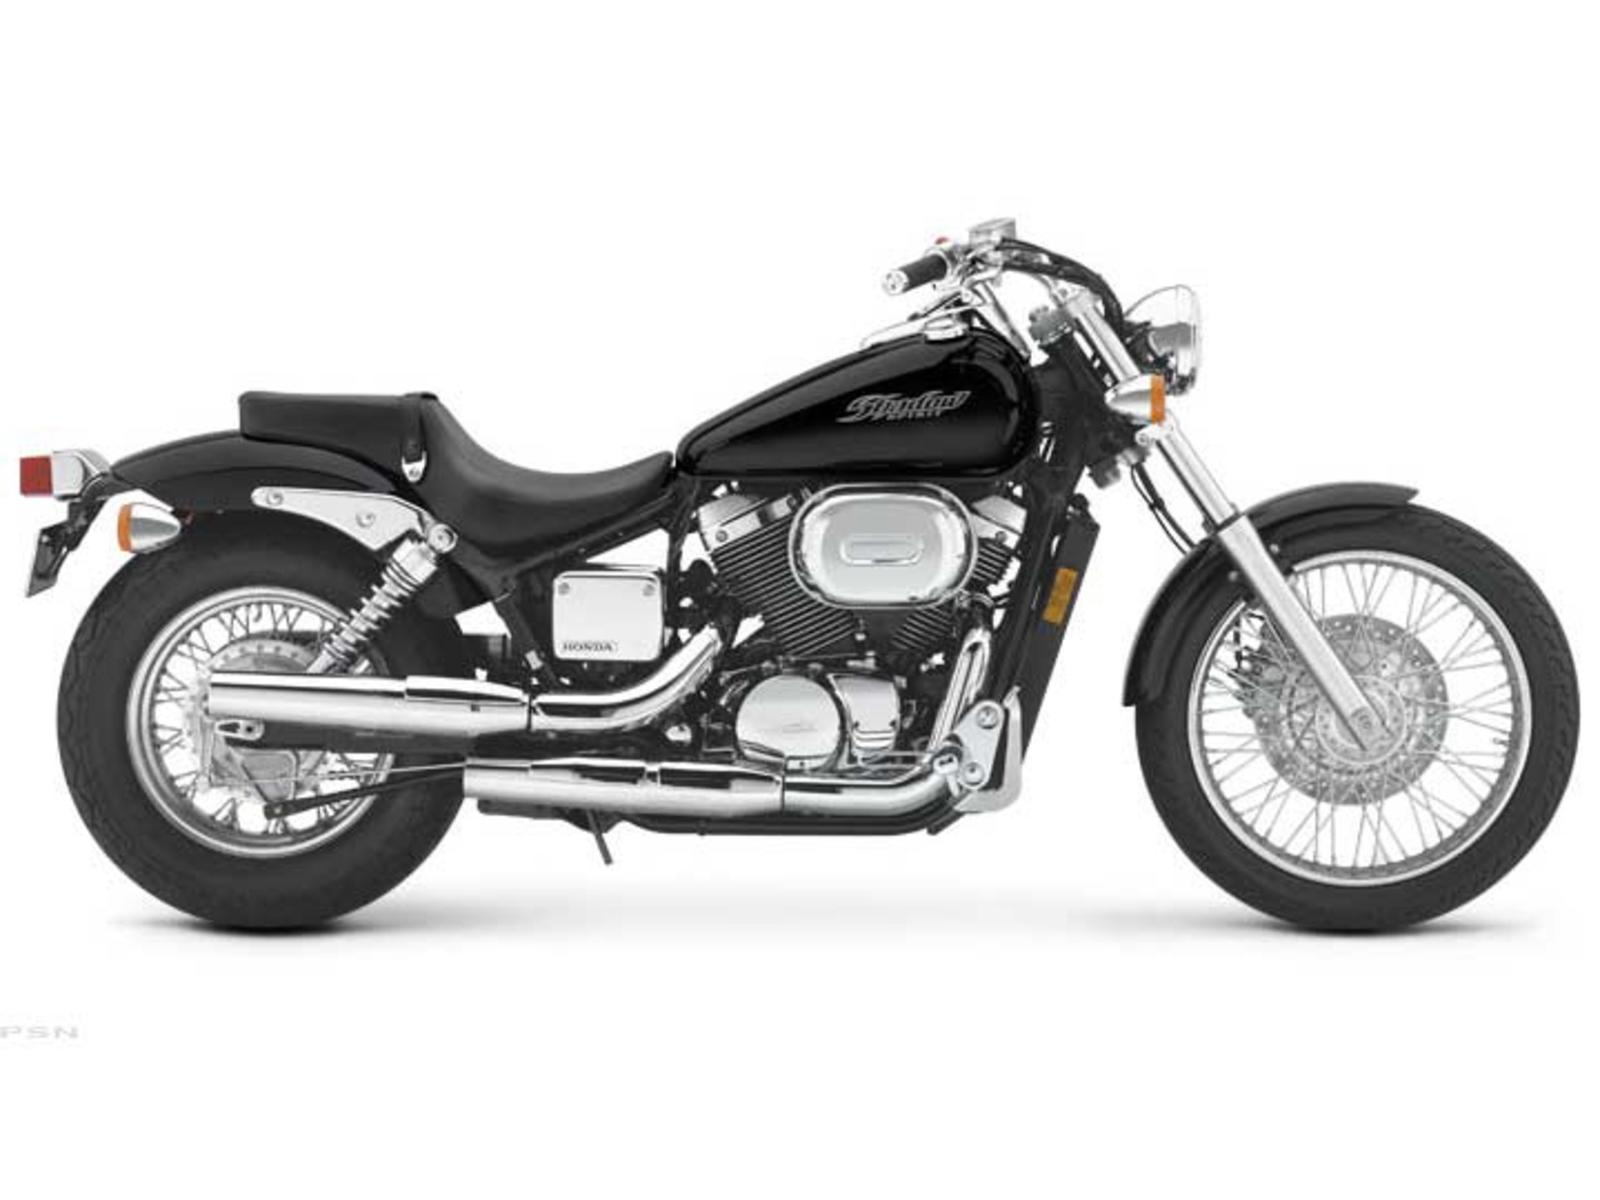 2006 honda shadow spirit 750 review top speed. Black Bedroom Furniture Sets. Home Design Ideas